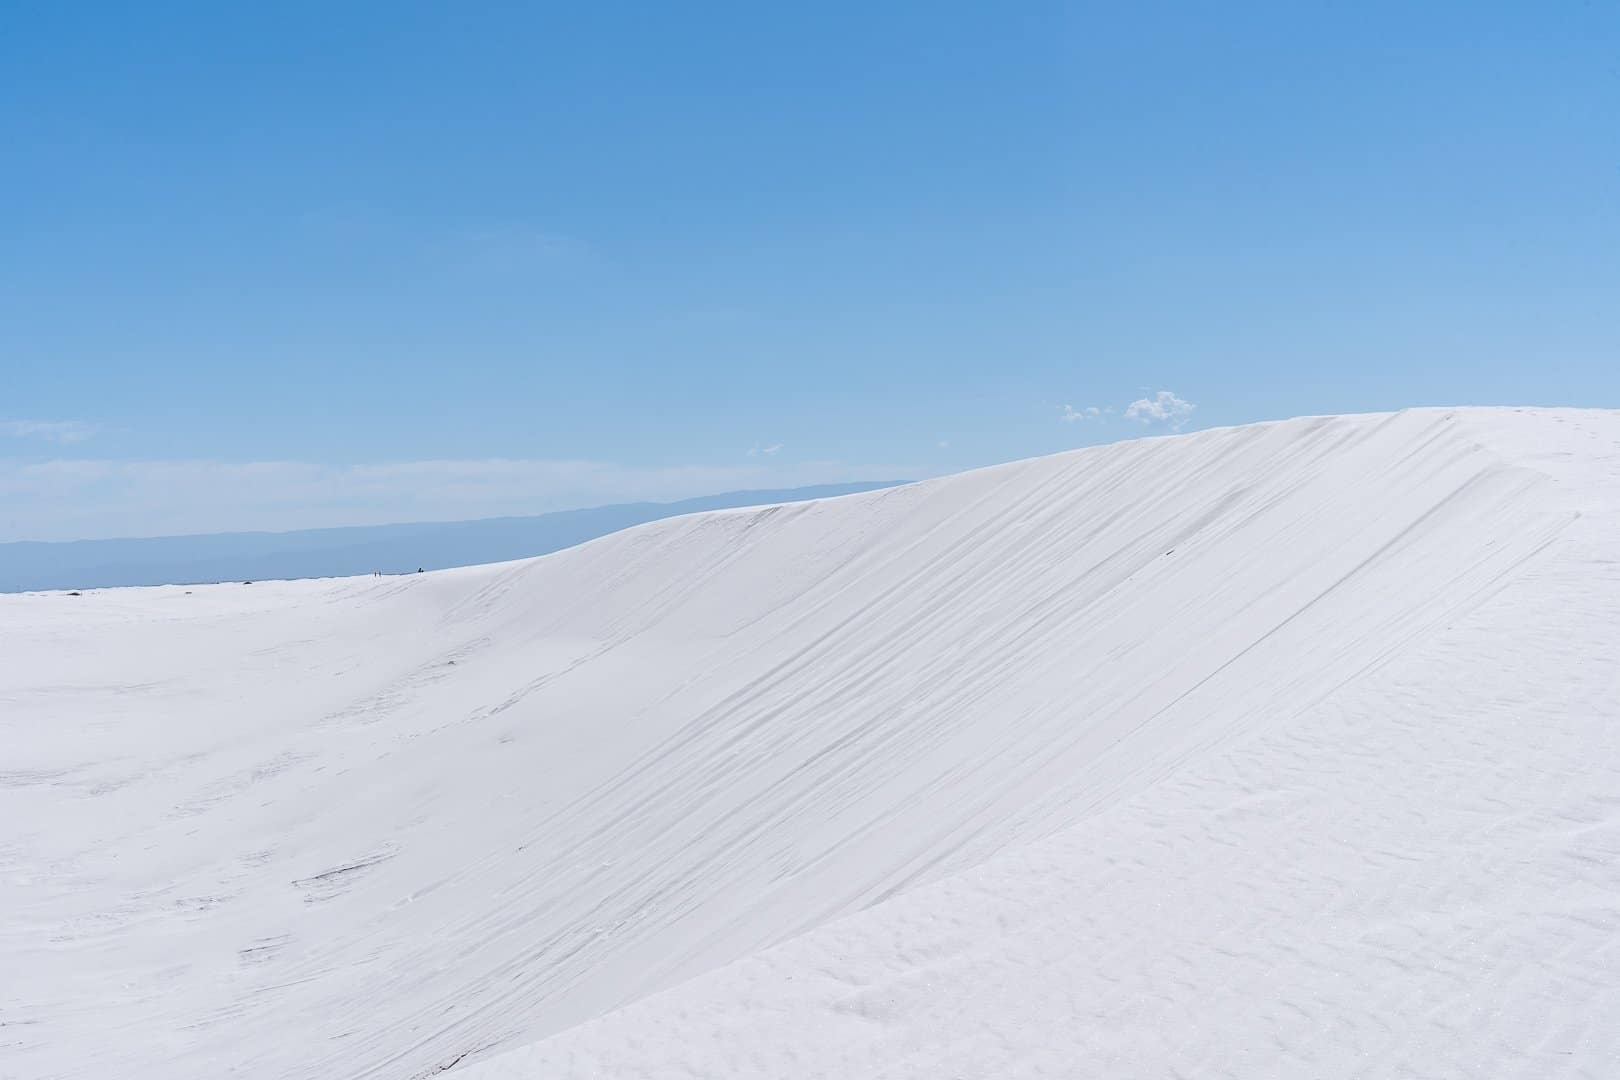 Dunes-of-white-Sands-national-park-new-mexico